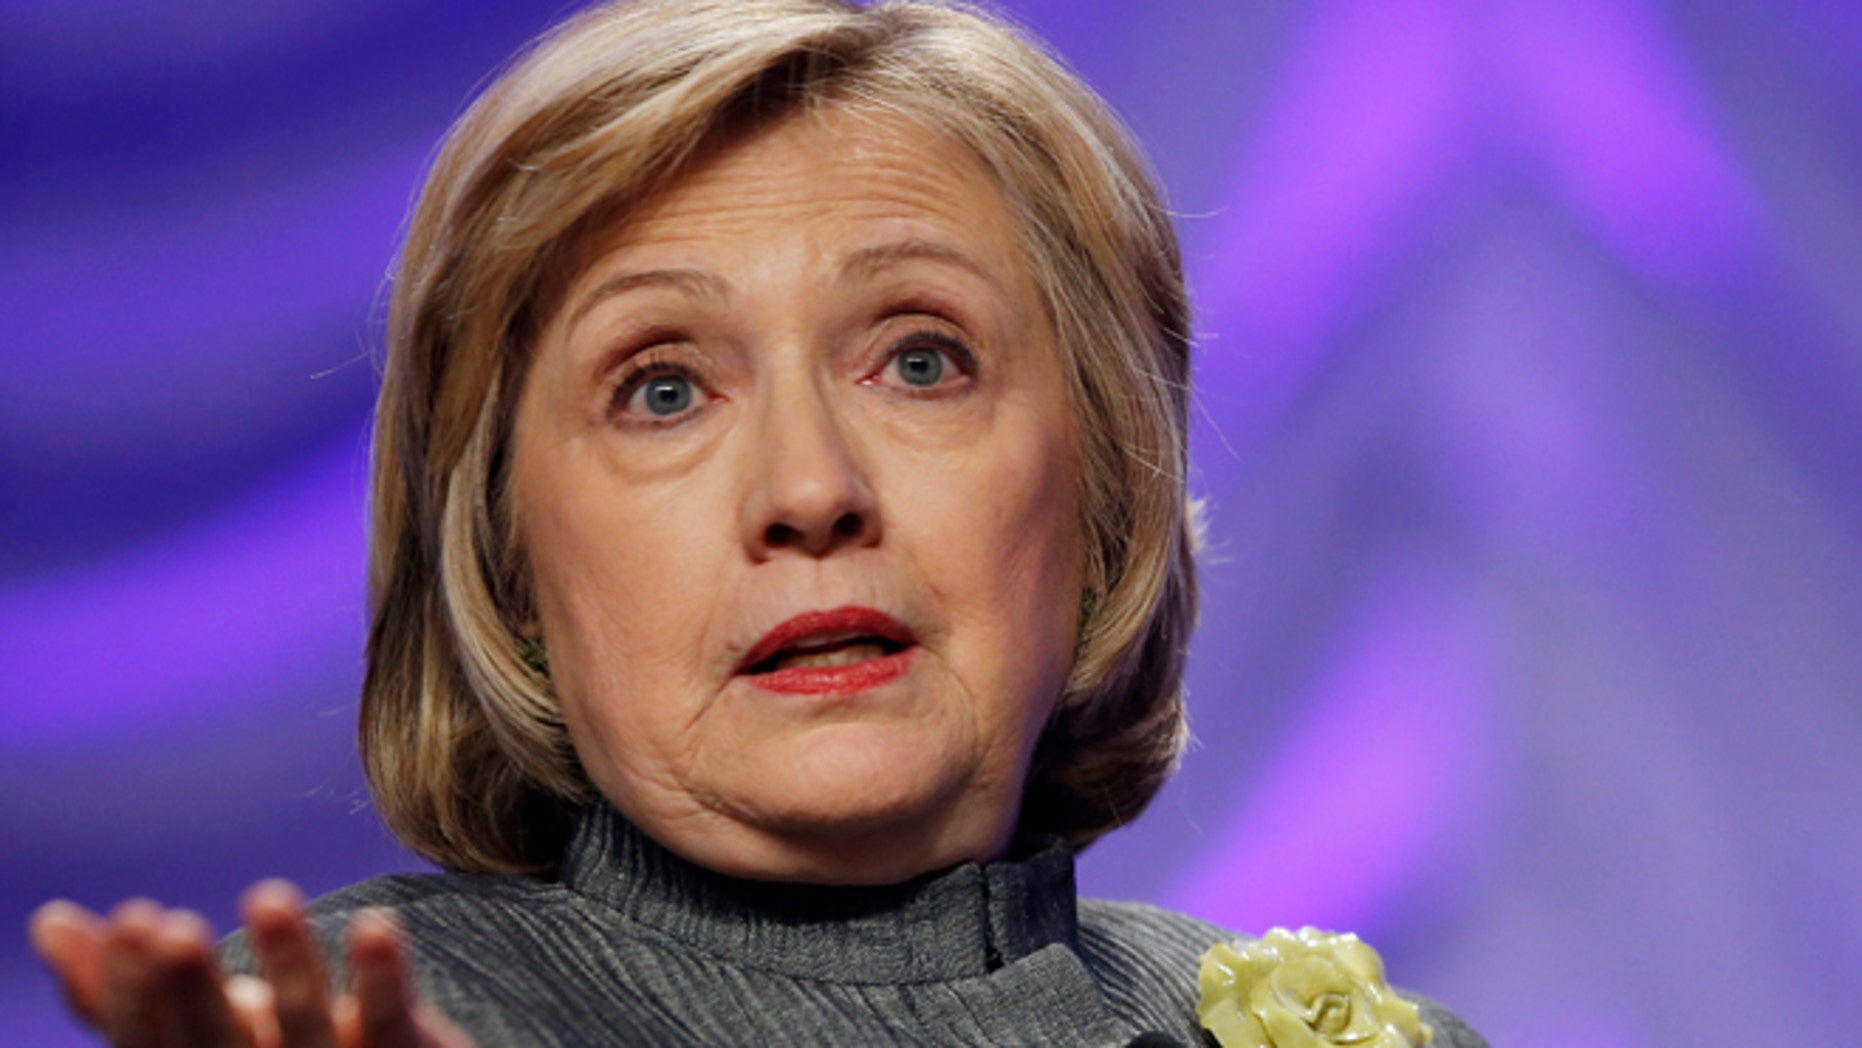 """FILE -This May 6, 2014 file photo shows Former Secretary of State Hillary Rodham Clinton speaking in National Harbor, Md. To congressional Republicans, """"Benghazi"""" is shorthand for incompetence and cover-up. Democrats hear it as the hollow sound of pointless investigations. It is, in fact, a Mediterranean port city in Libya that was the site of an attack on an American diplomatic compound on the 11th anniversary of 9/11 that killed U.S. Ambassador Chris Stevens and three other Americans. That's nearly all that U.S. politicians can agree on about Benghazi.  (AP Photo/Charles Dharapak, File)"""